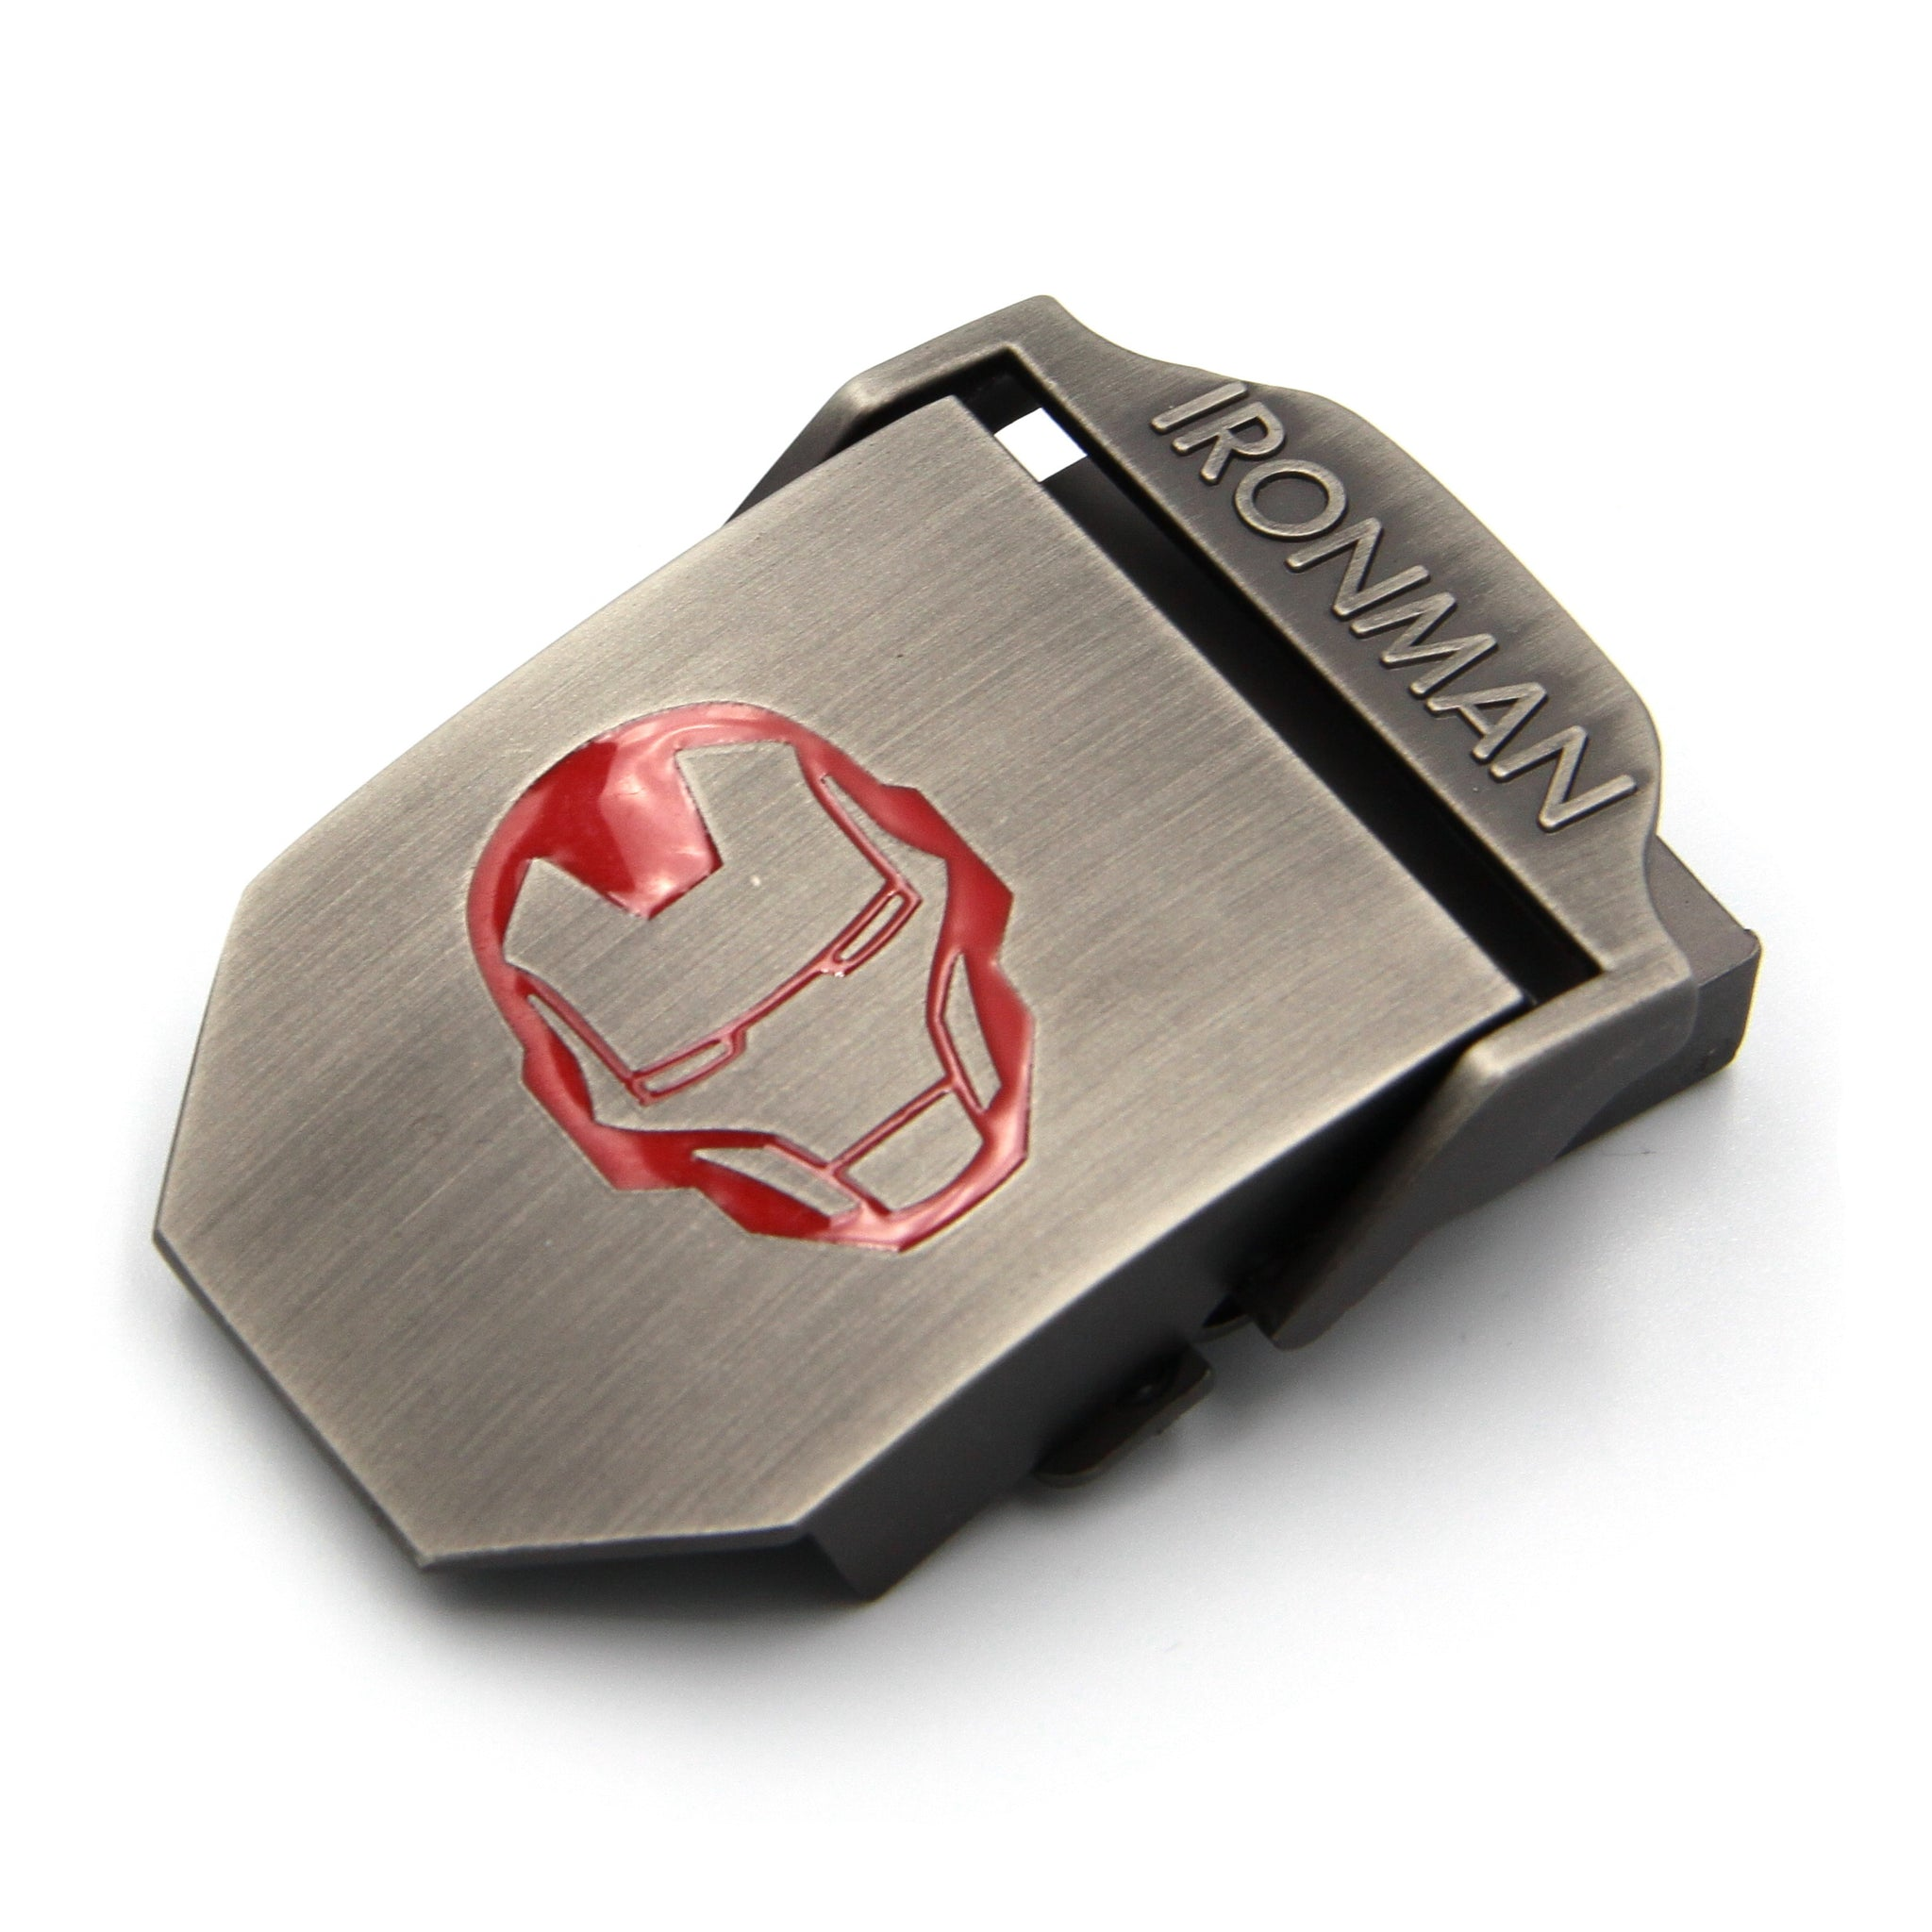 Iron man belt buckle Transformer X Men Canvas belt buckle - Metal Field